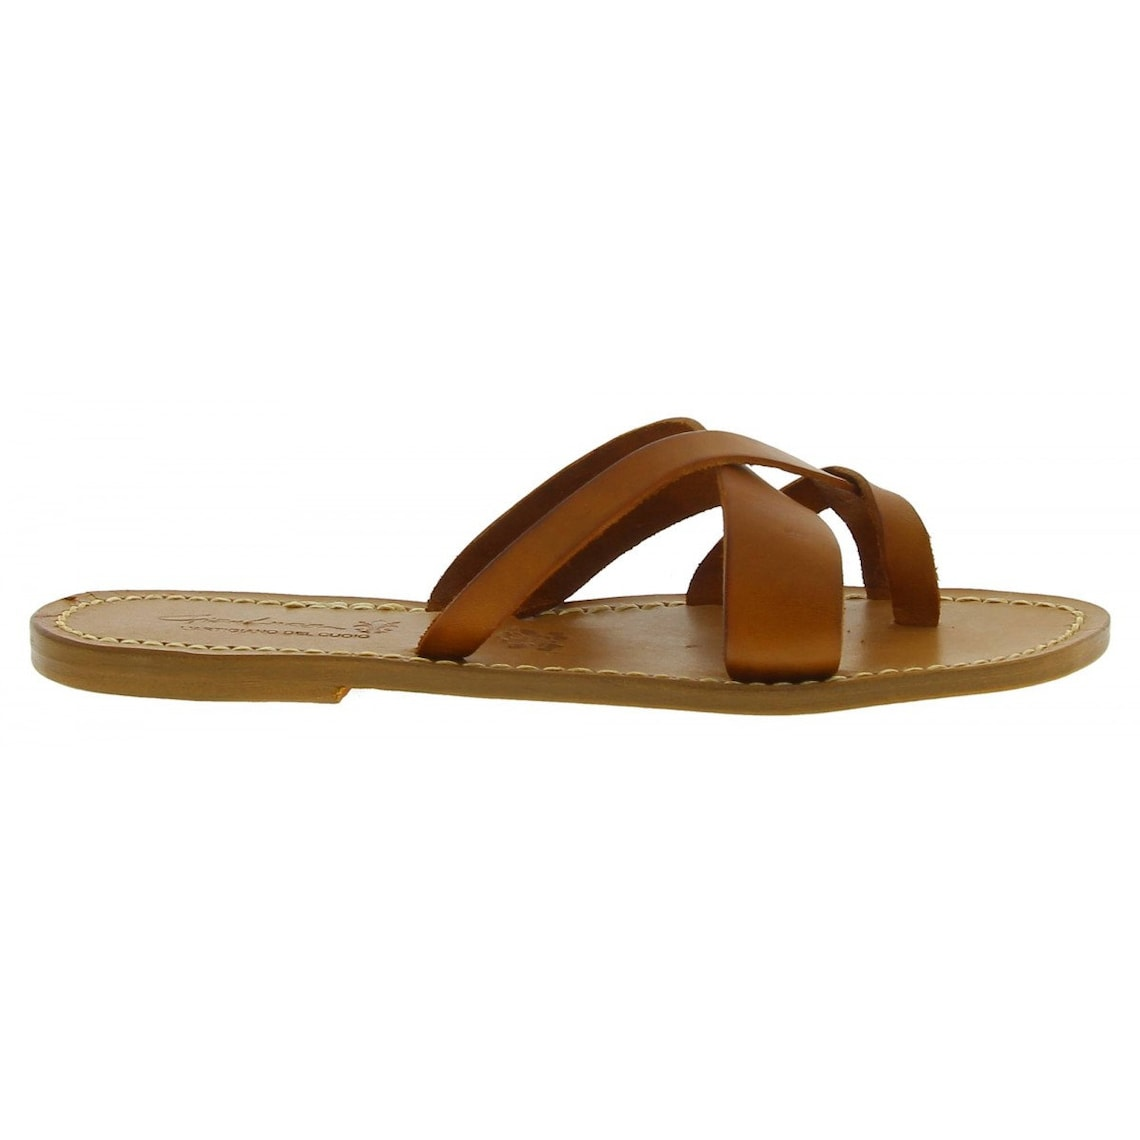 Women's thong sandals Handmade in Italy in tan calf leather |